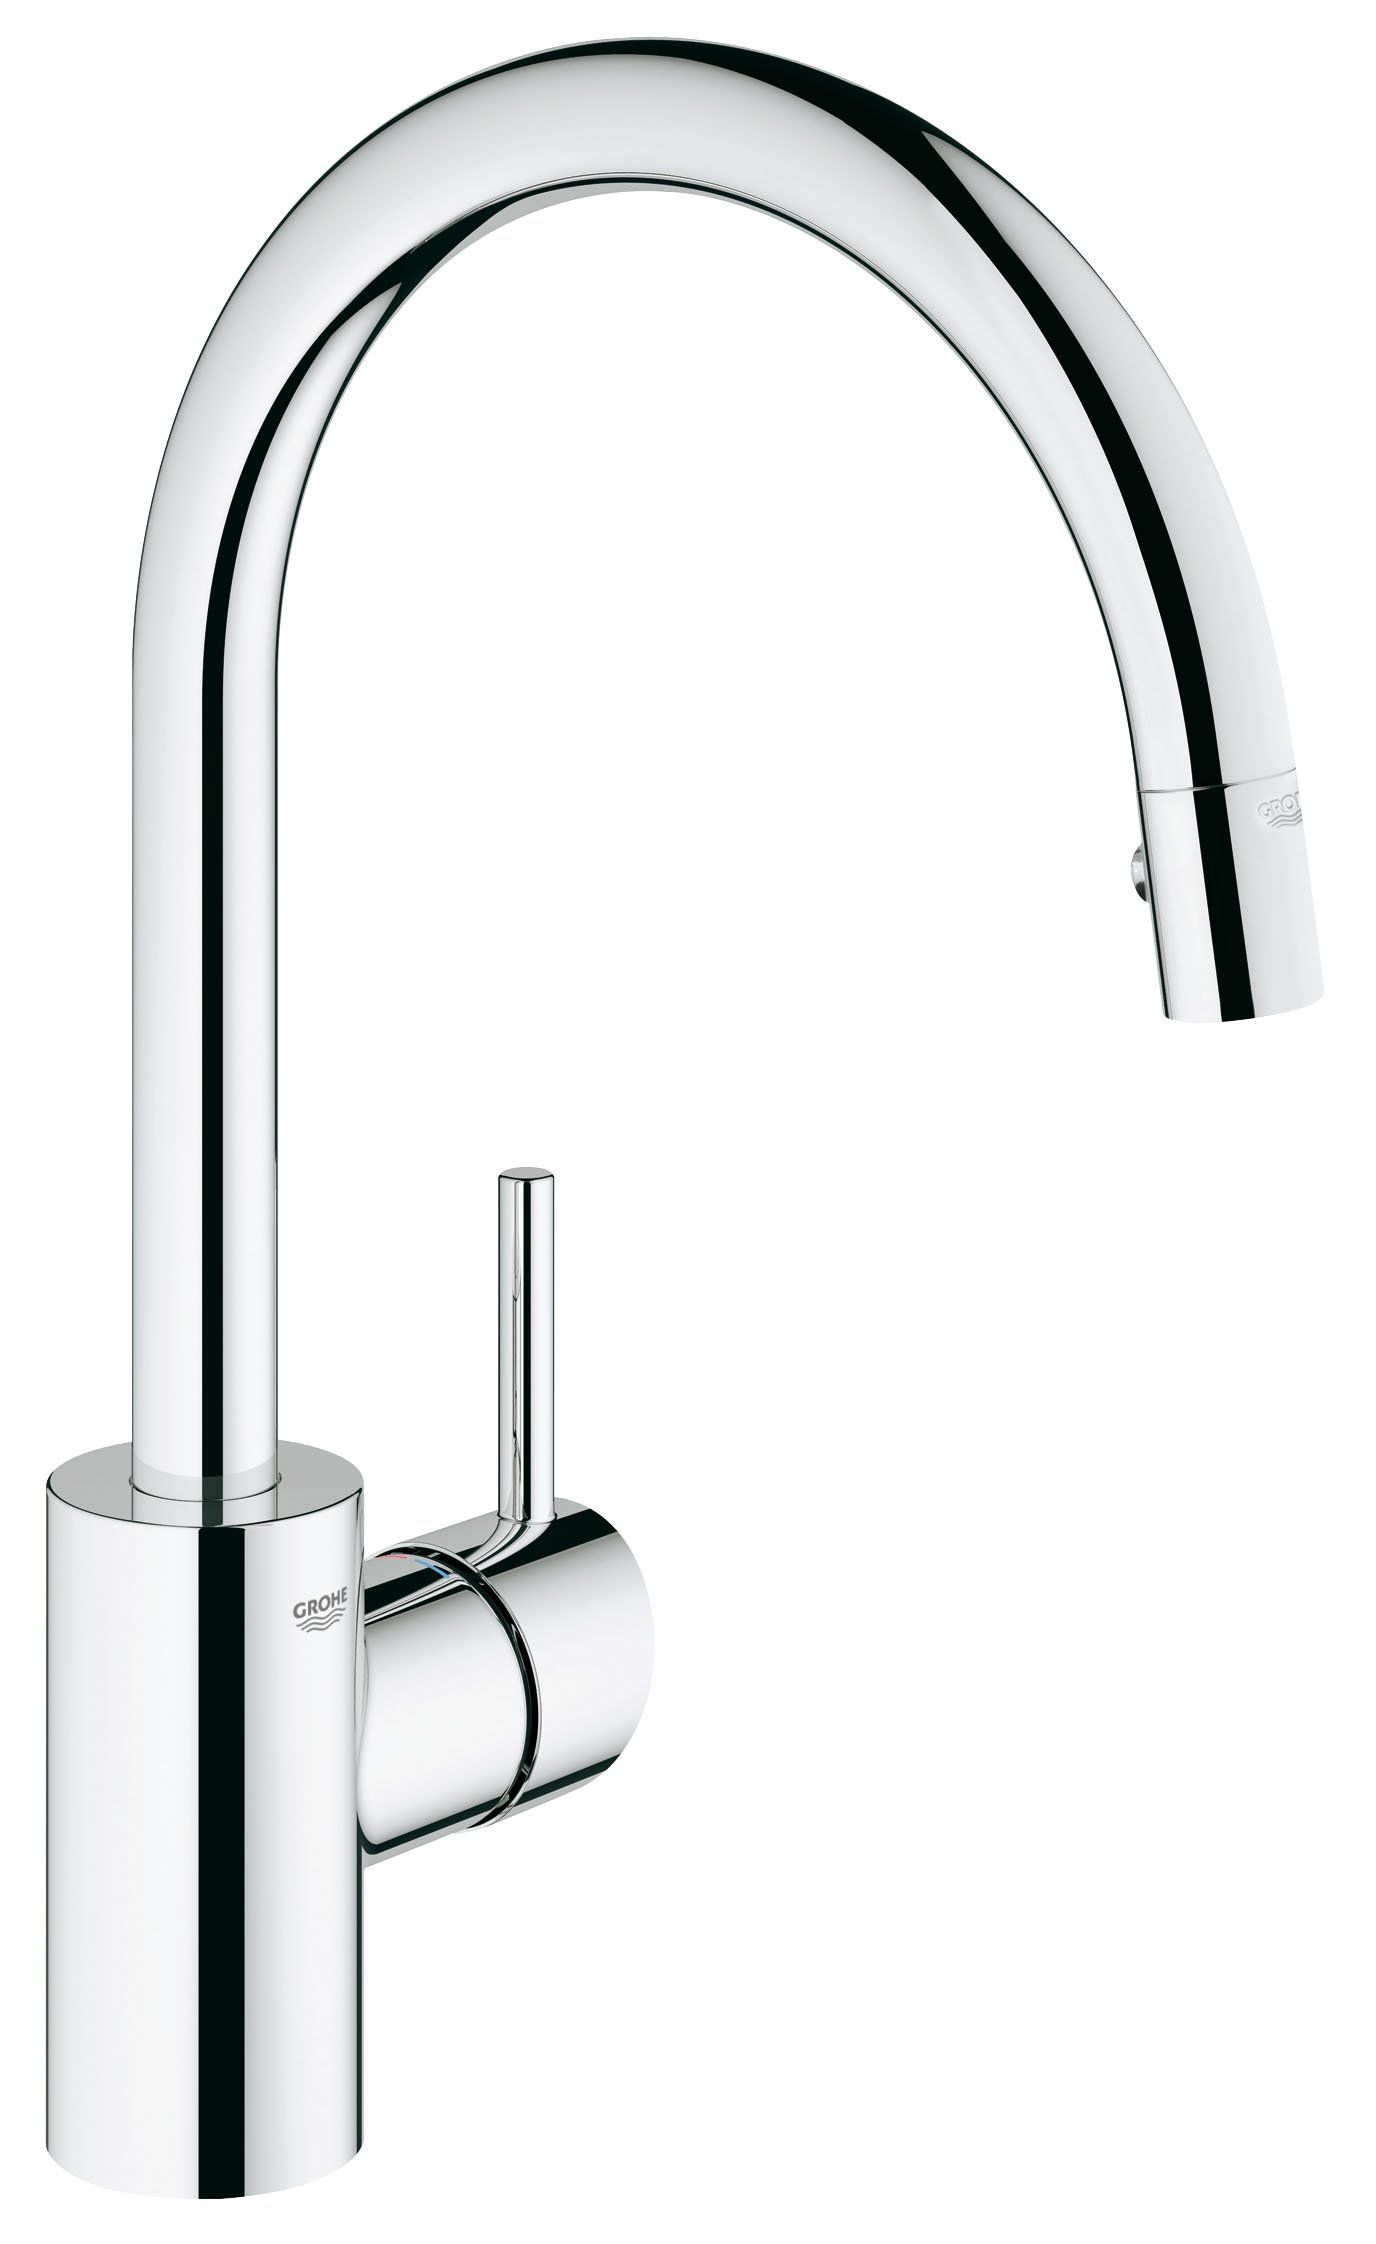 180 on amazon grohe 32665001 concetto single handle pull down spray kitchen faucet